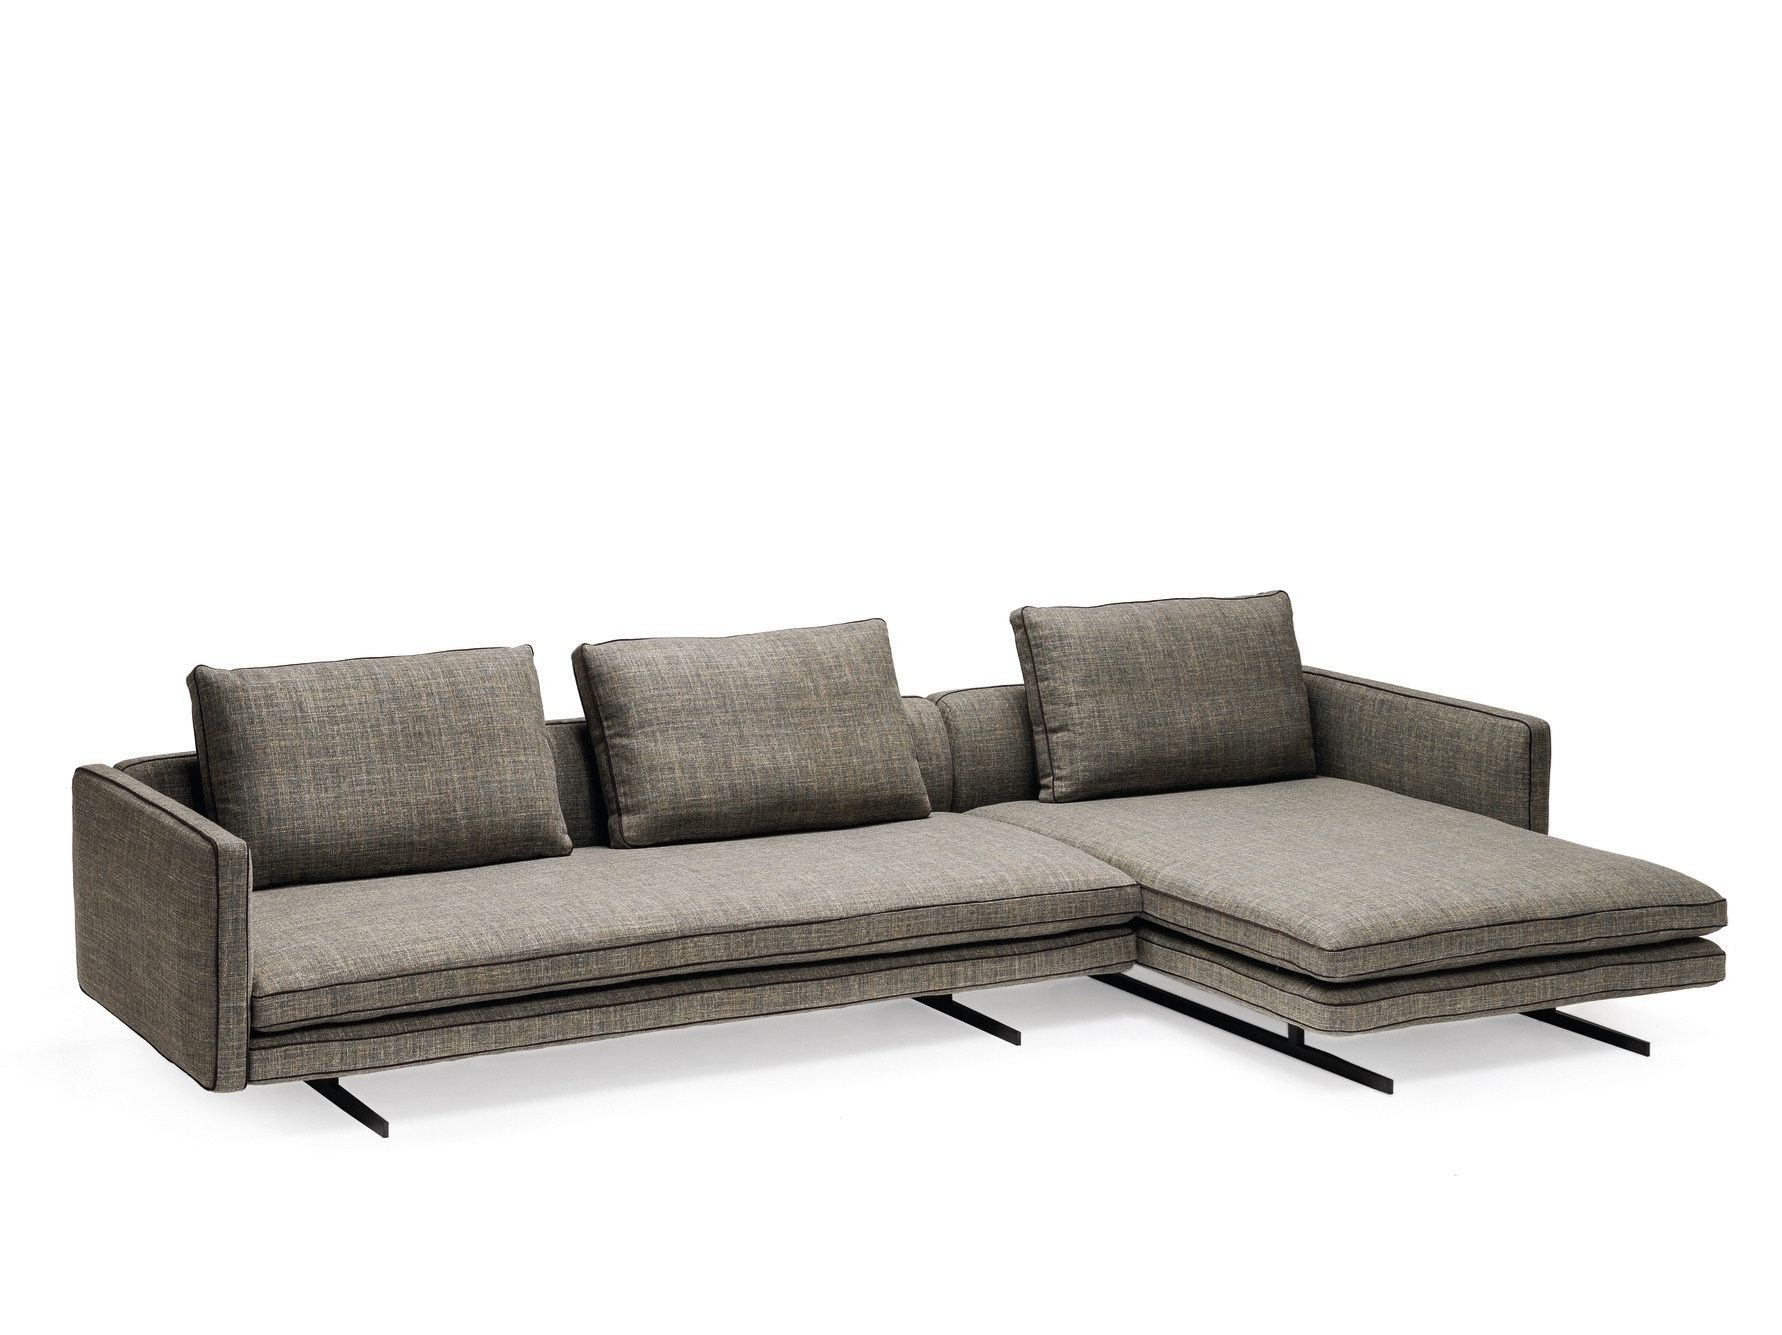 Sofa with chaise longue 28 images abbe sofa with - Sofa piel chaise longue ...